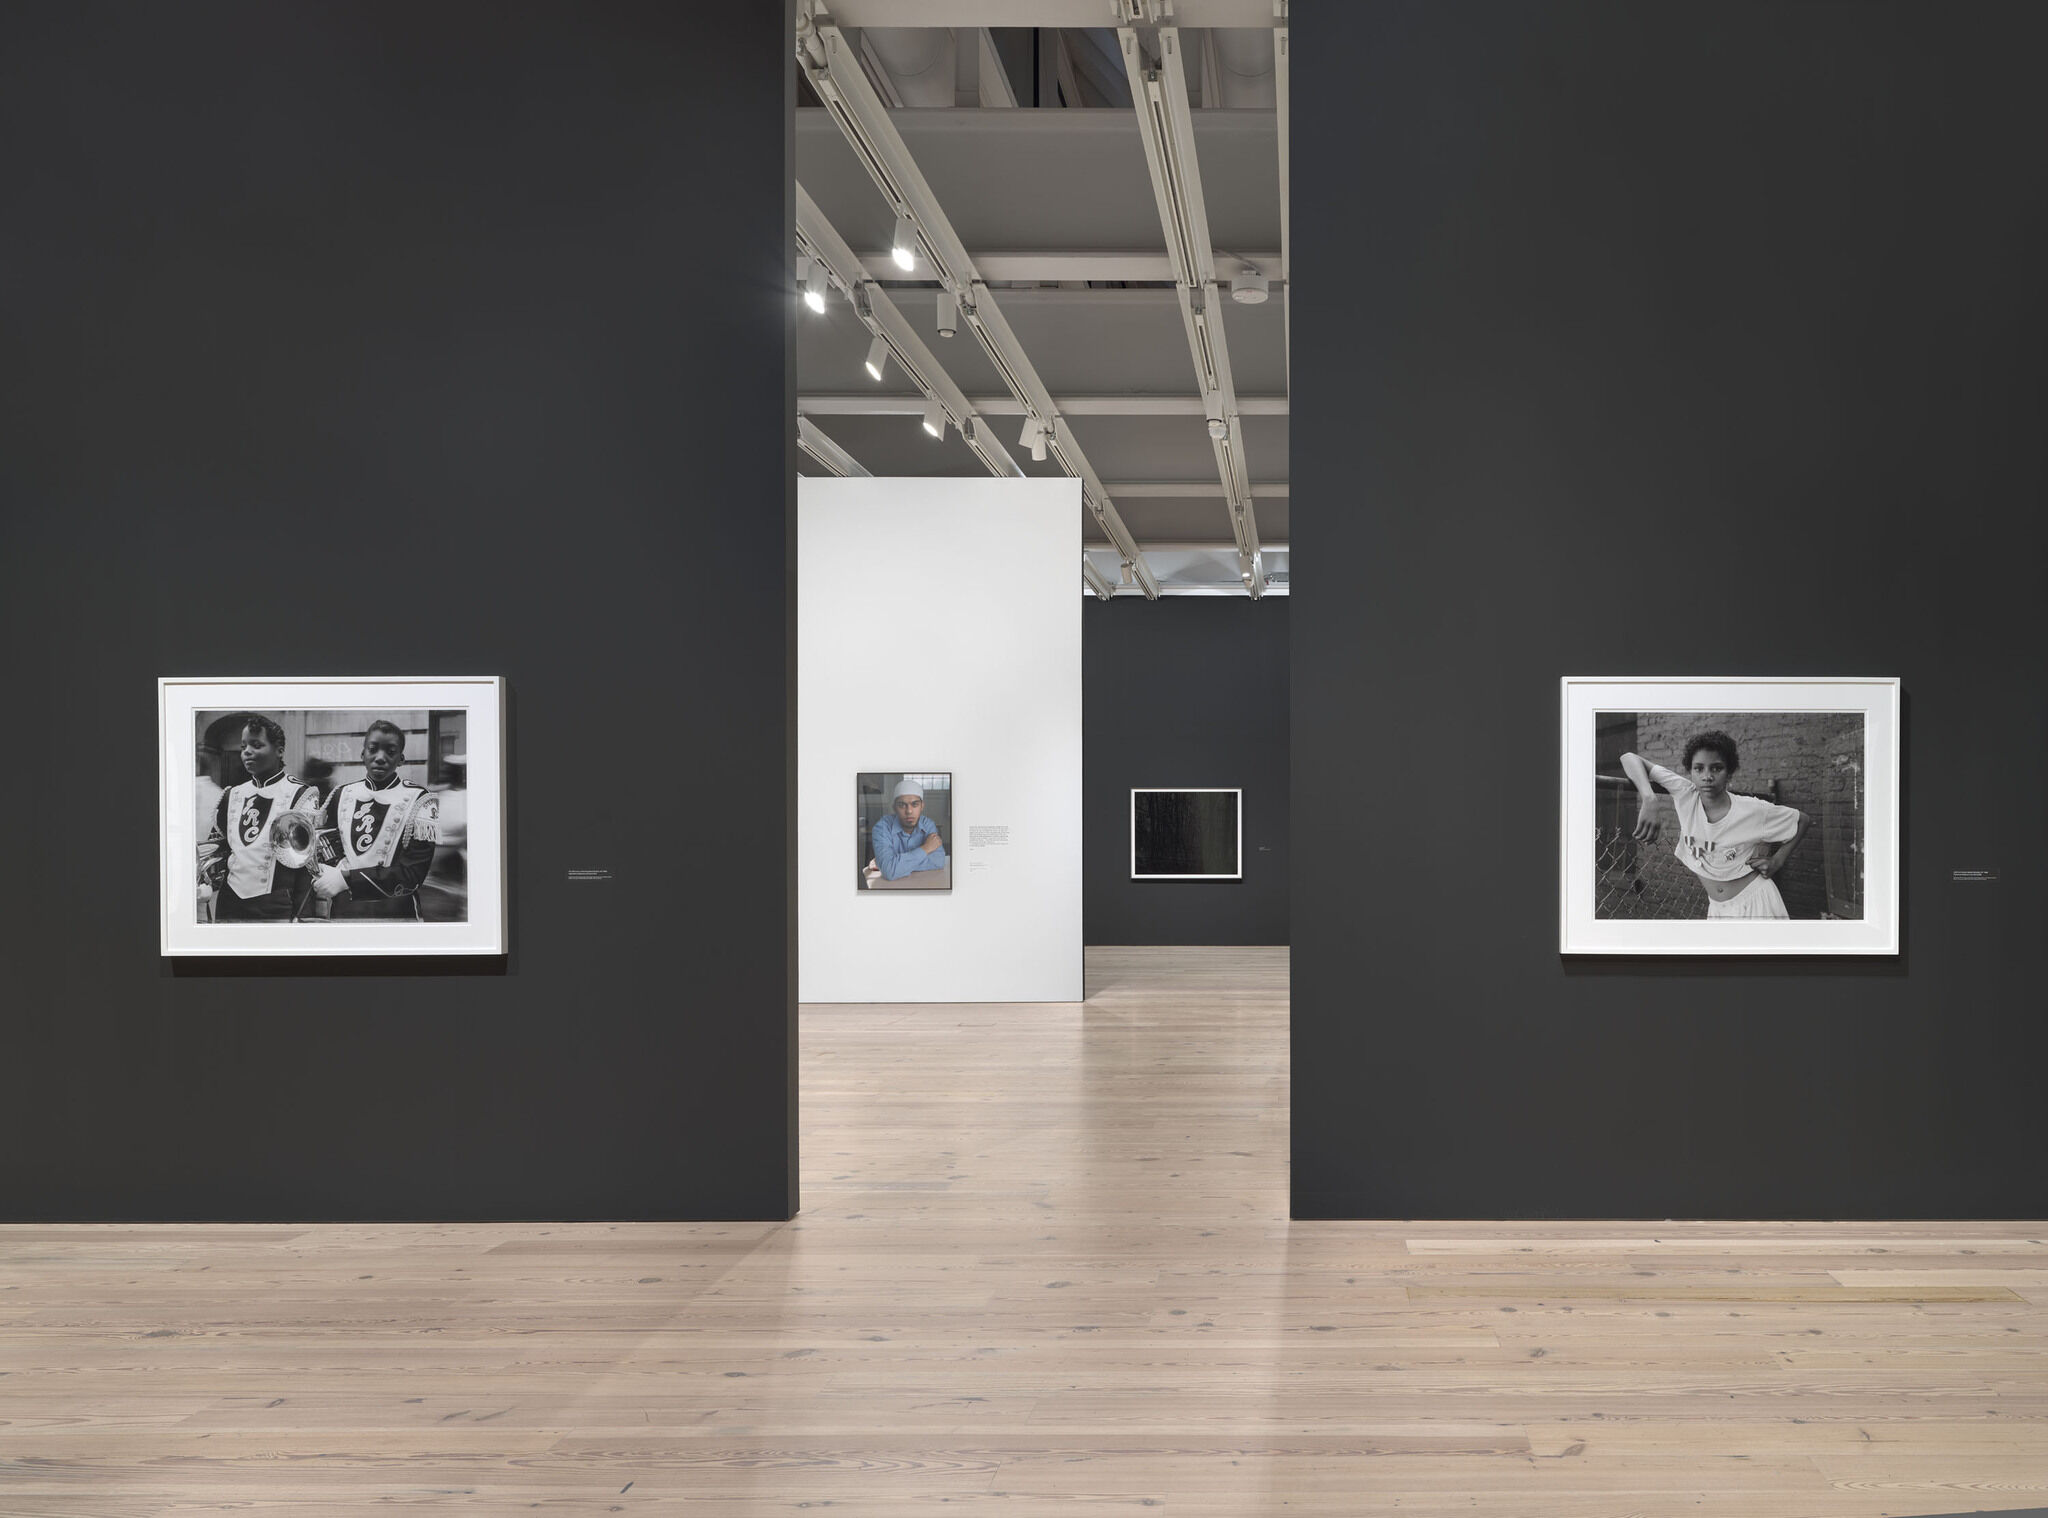 A main exhibition room of the Whitney with pieces mounted against black and white walls.